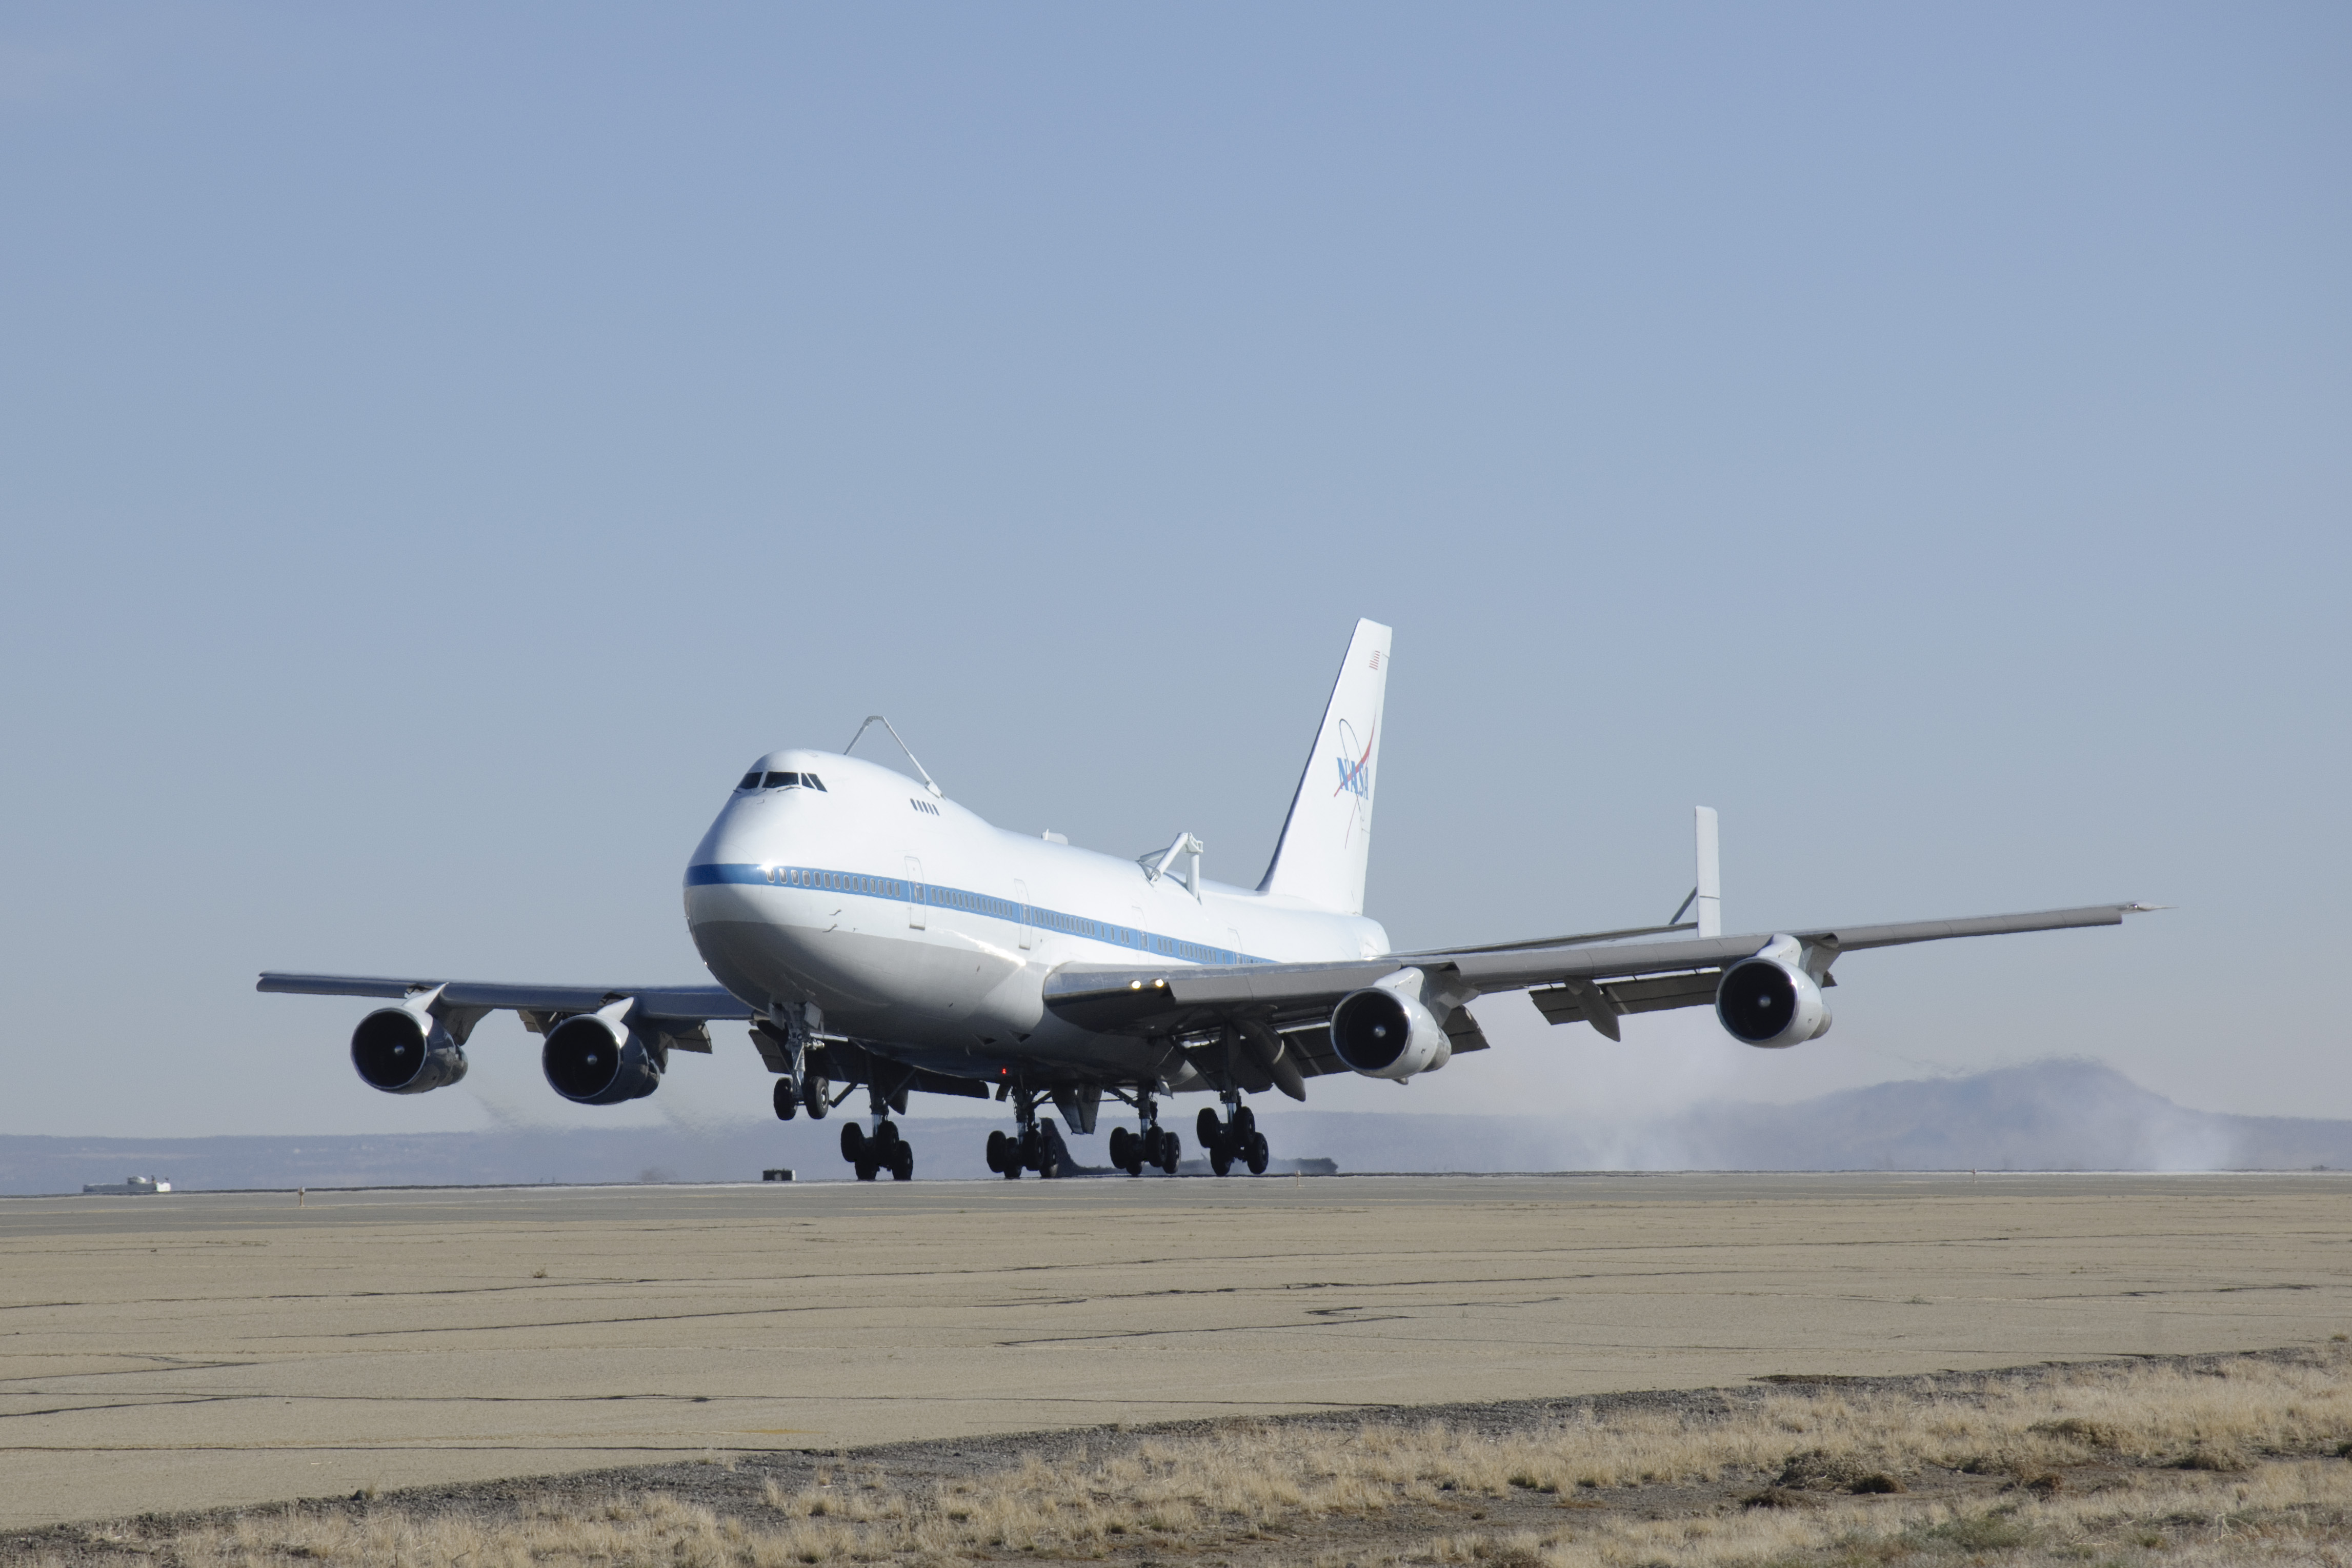 space shuttle carrier 747 american airlines - photo #30